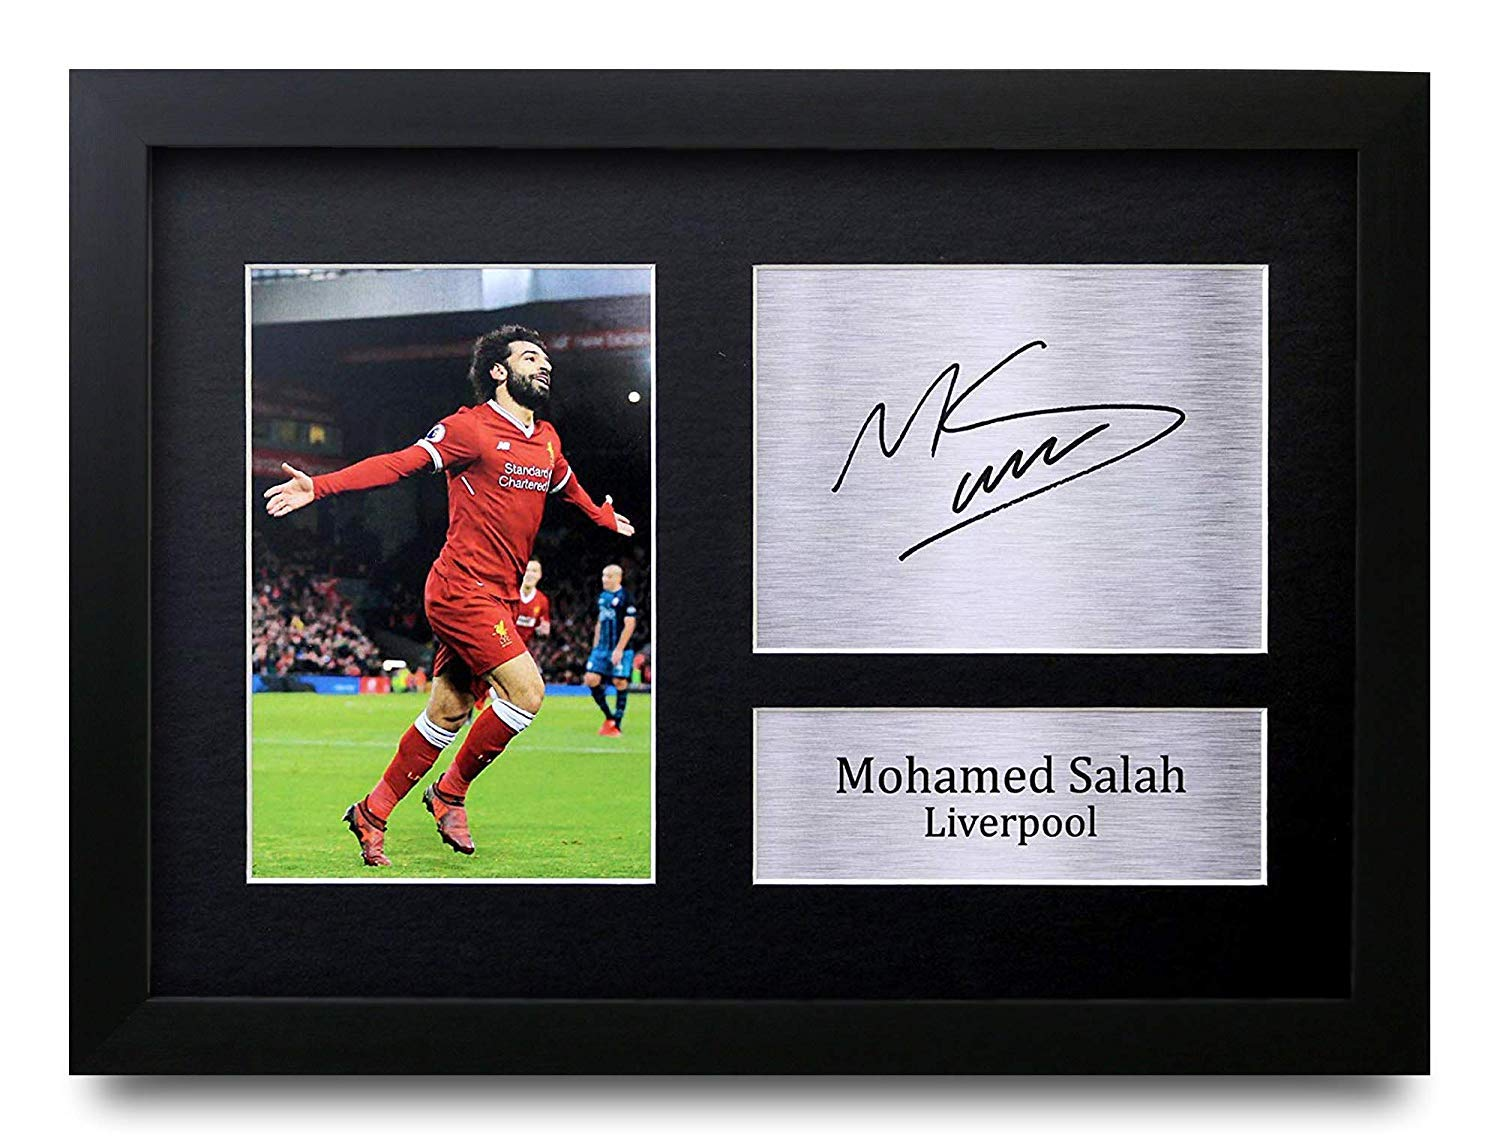 Kitbags /& Lockers Virgil Van Dijk 12x8 A4 Signed Liverpool Autographed Photo Photograph Picture Frame Soccer Gift